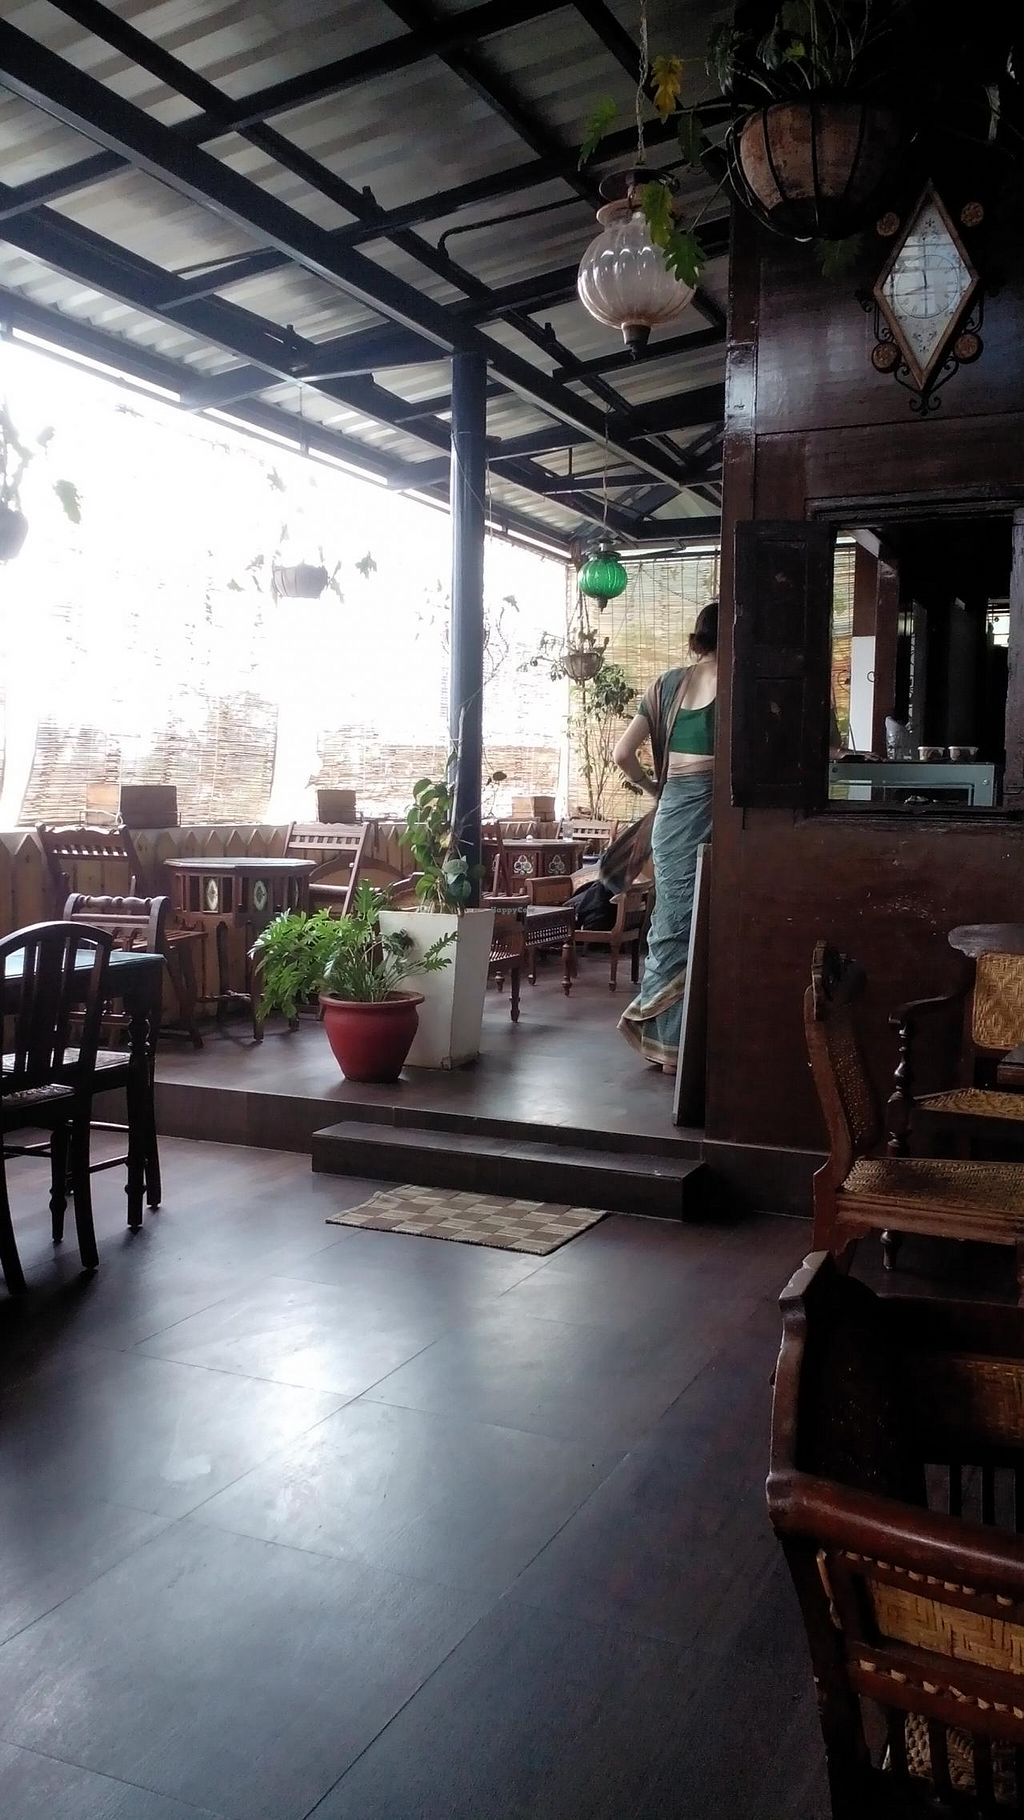 """Photo of Paradigm Shift Vegan Cafe  by <a href=""""/members/profile/Yilla"""">Yilla</a> <br/>roof terrace <br/> March 31, 2015  - <a href='/contact/abuse/image/38782/97427'>Report</a>"""